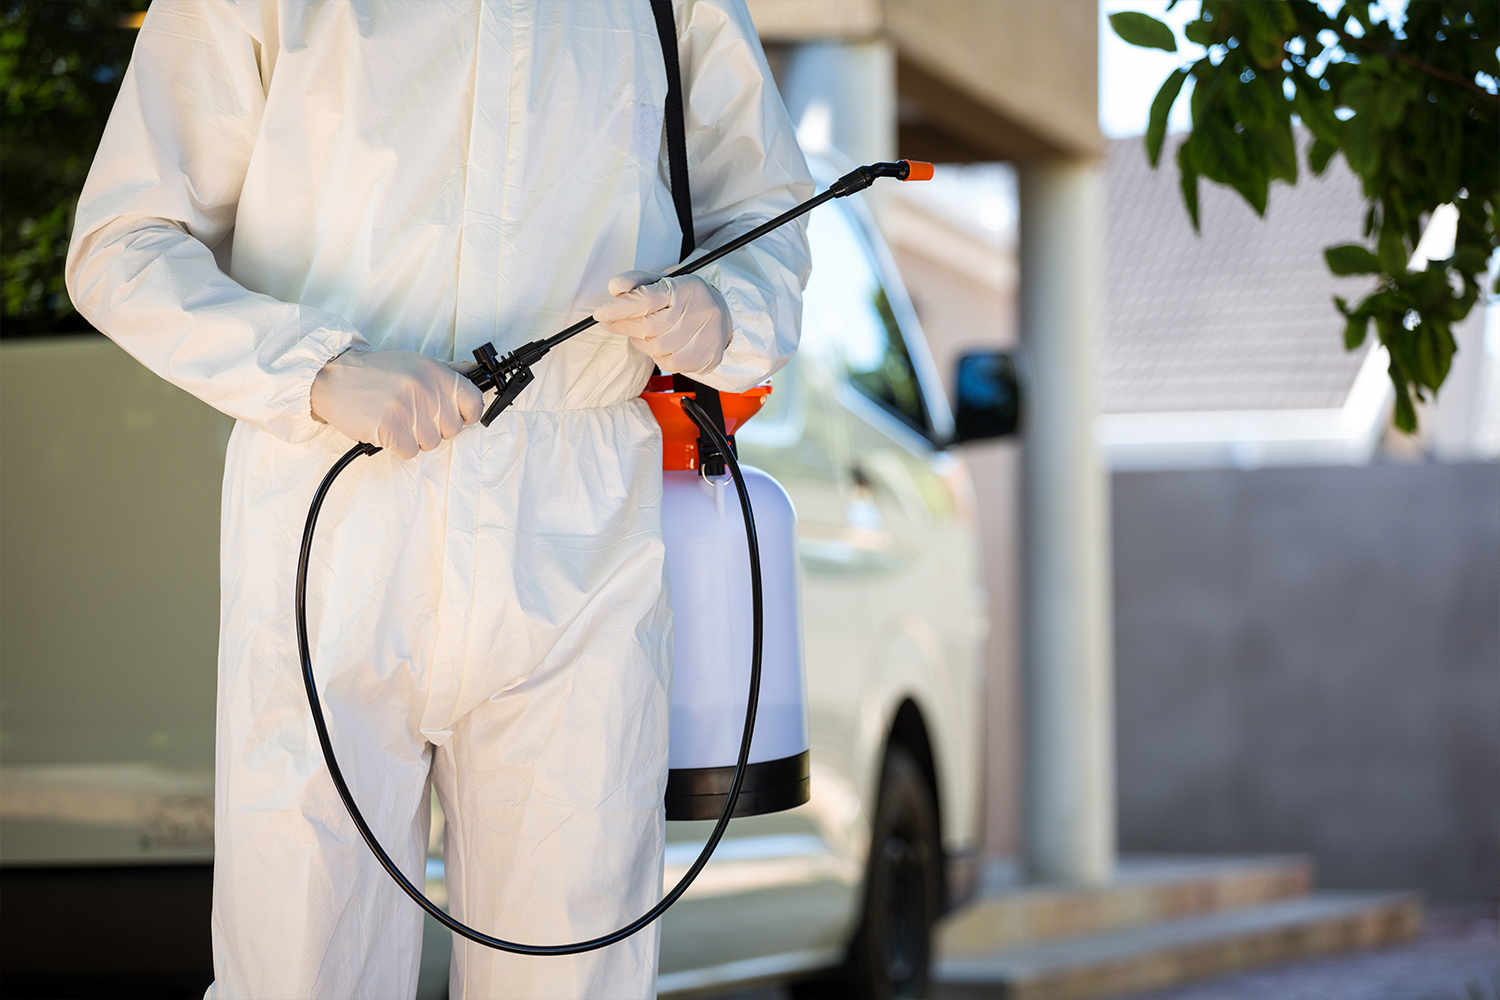 Pest Control Training: Which Companies and Schools are the Best?